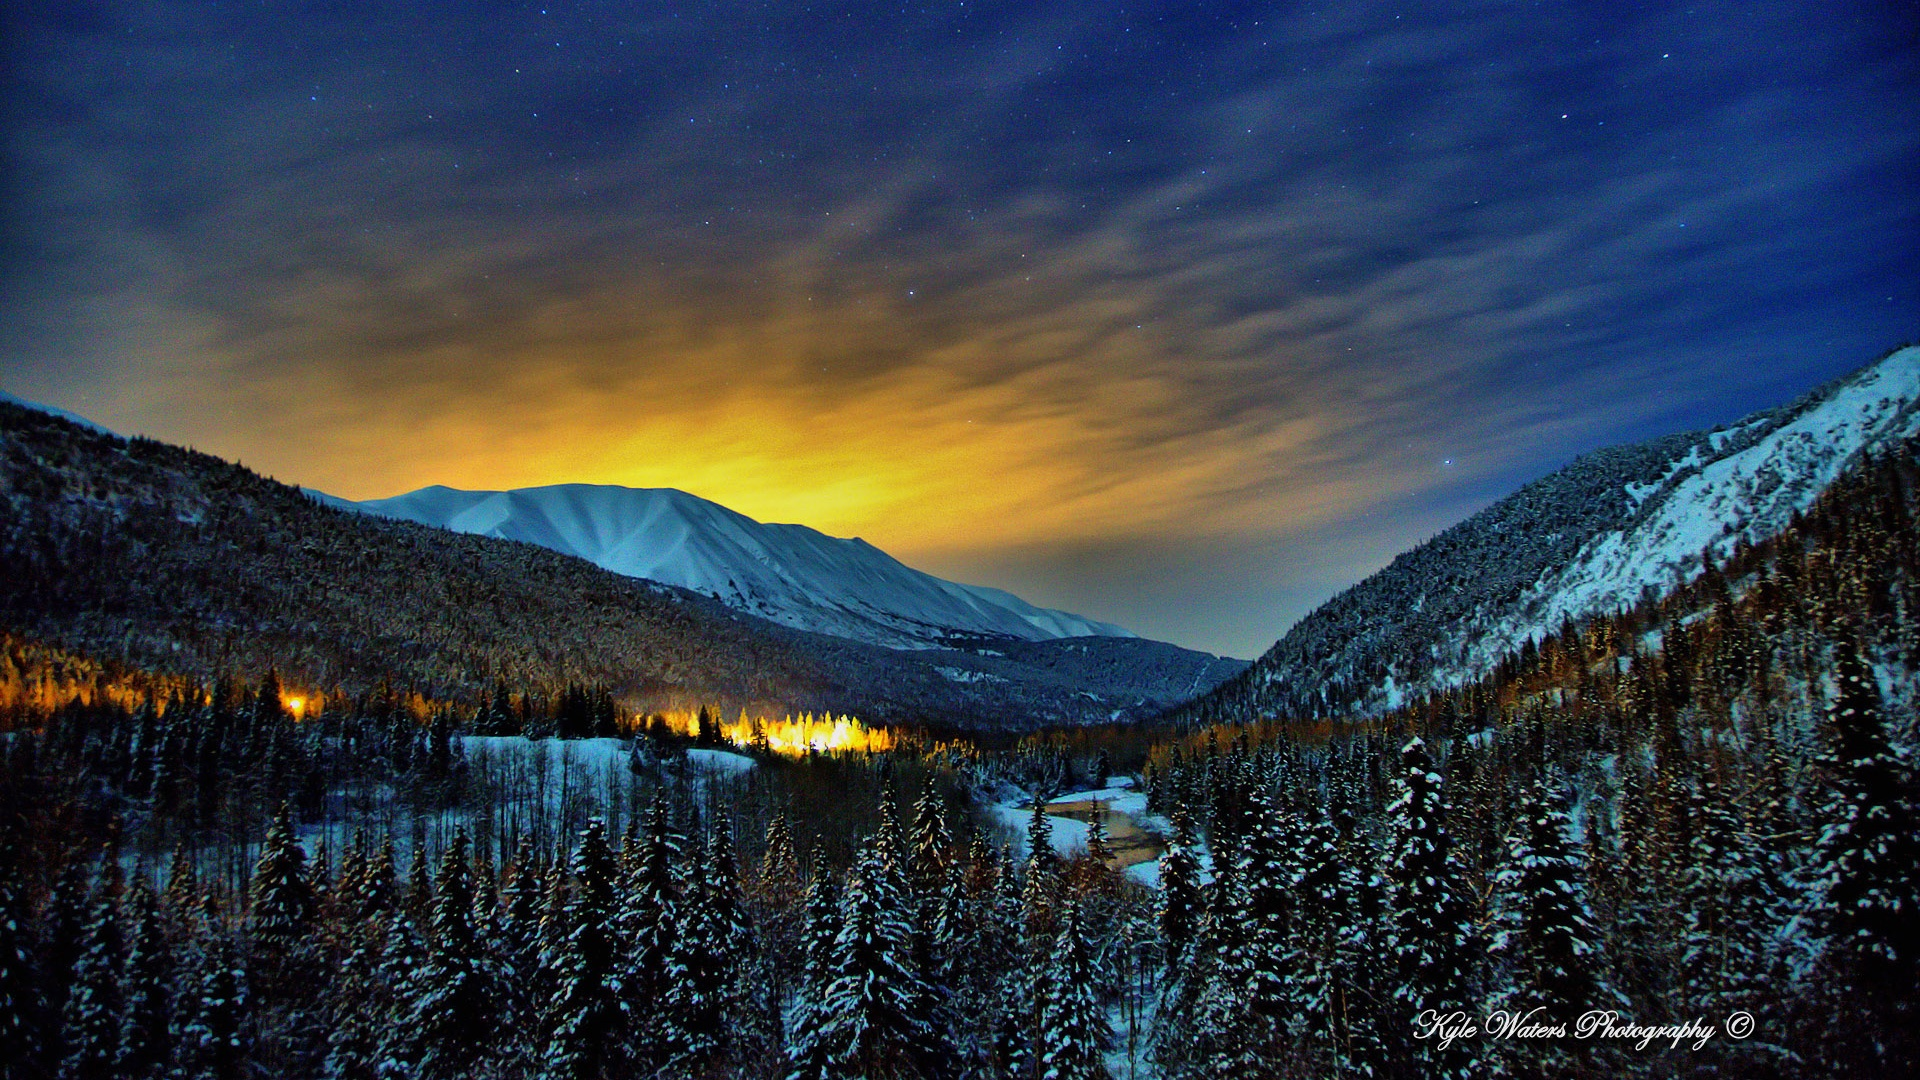 Alaska Winter Nights Wallpapers In Jpg Format For Free Download